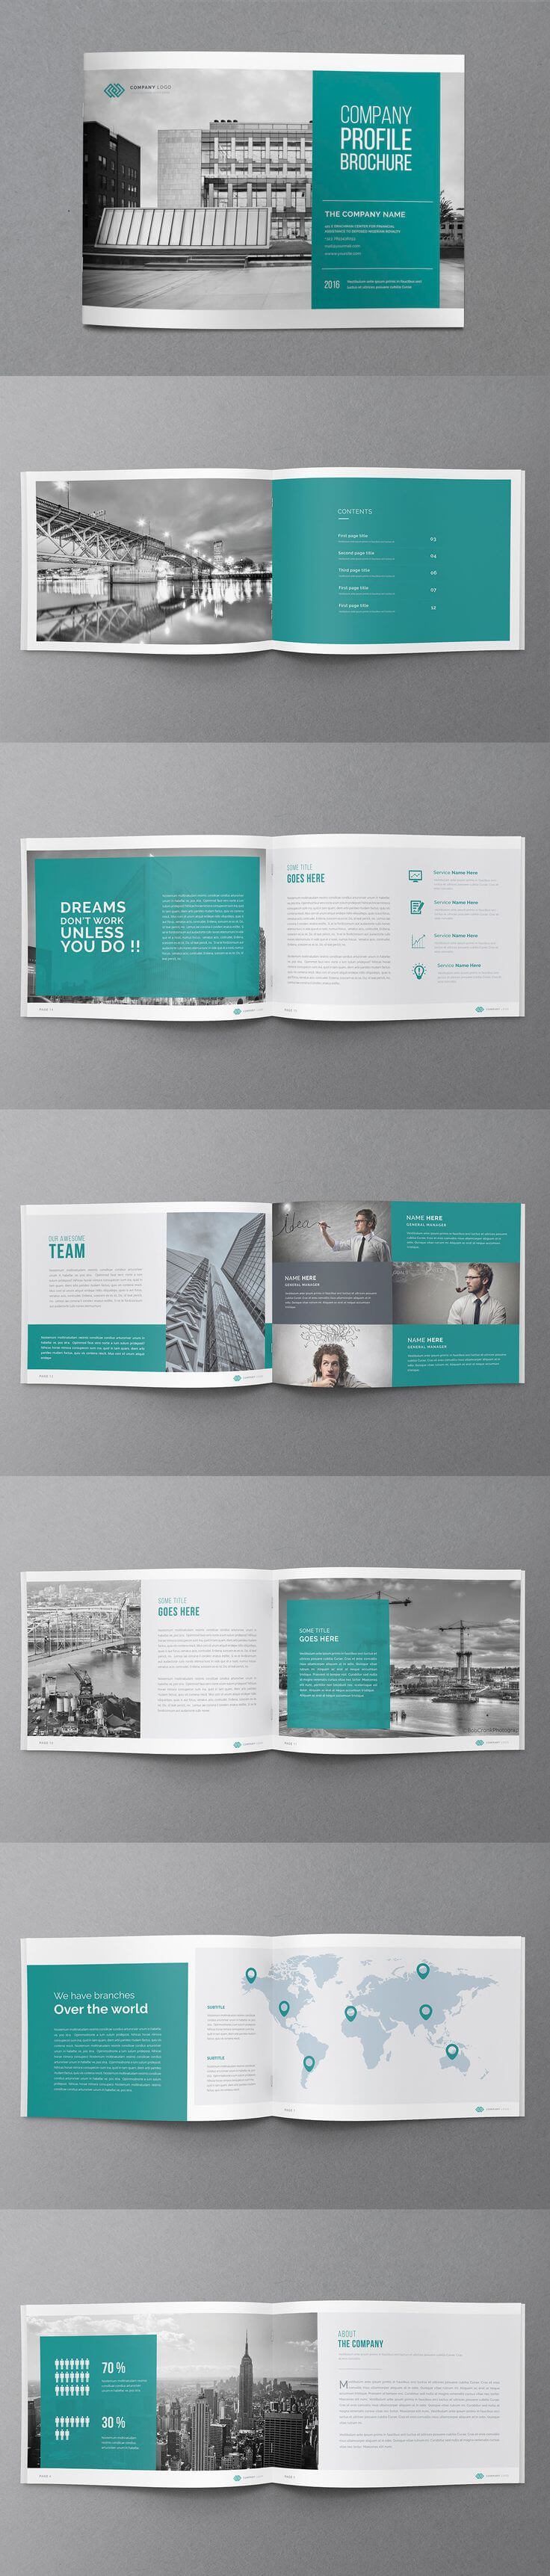 Annual Report Brochure Template Indesign Indd – 20 Pages A4 Inside Brochure Template Indesign Free Download